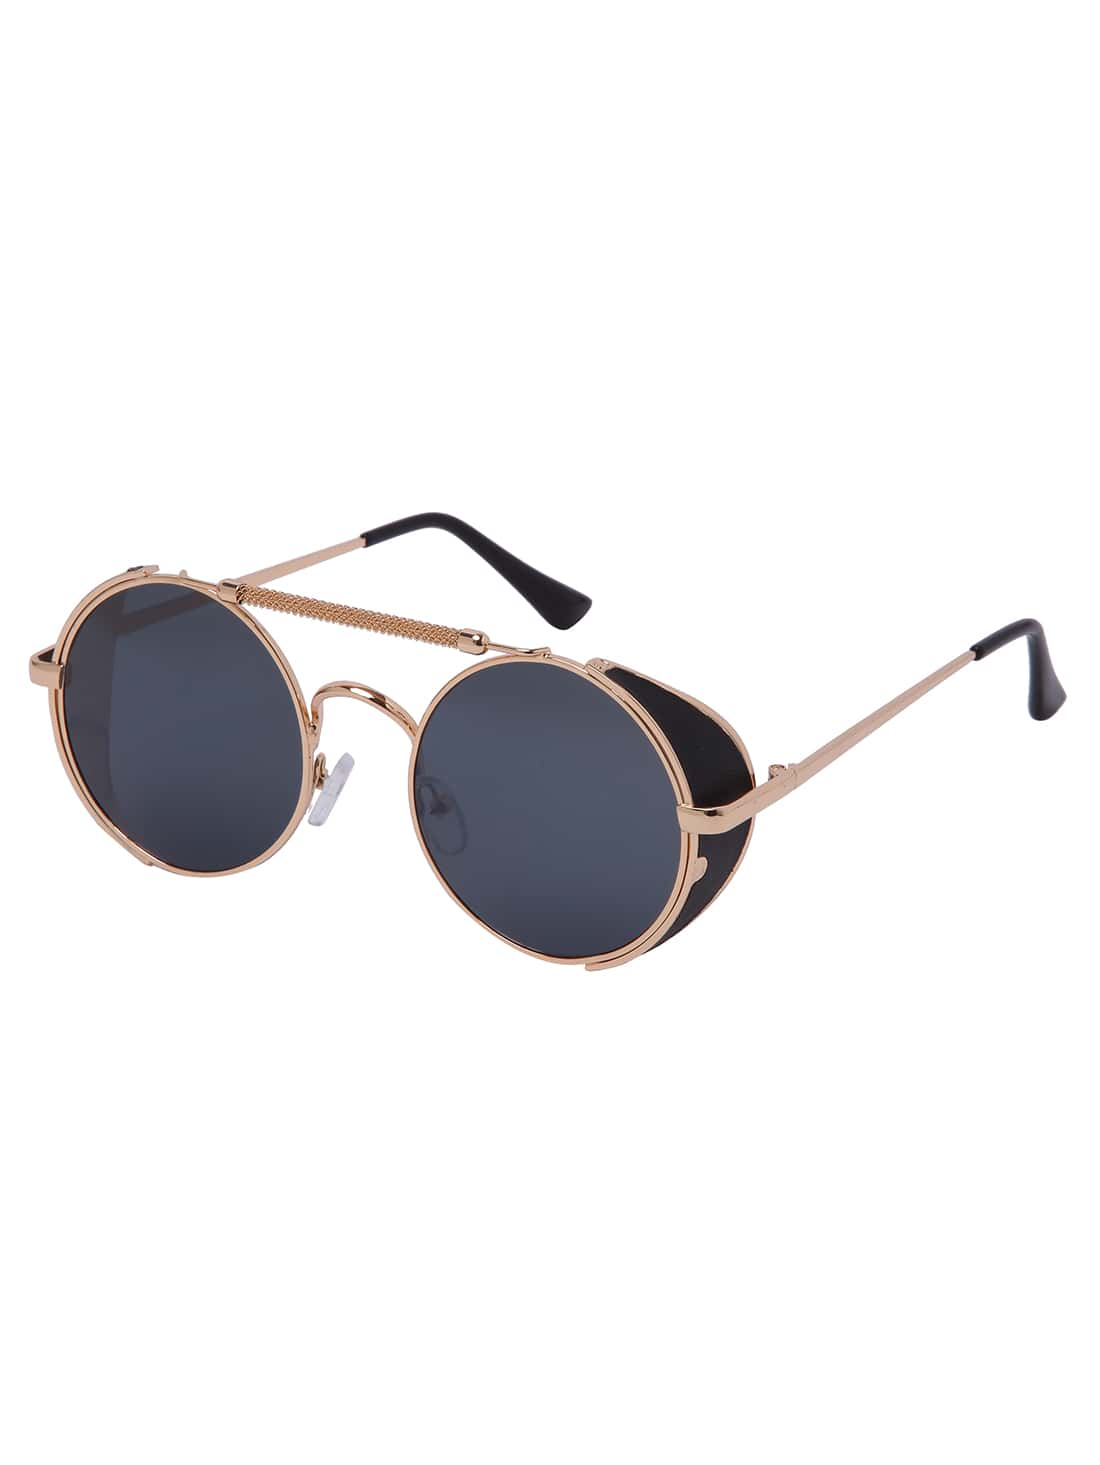 Golden Frame Retro Round Lenses Sunglasses